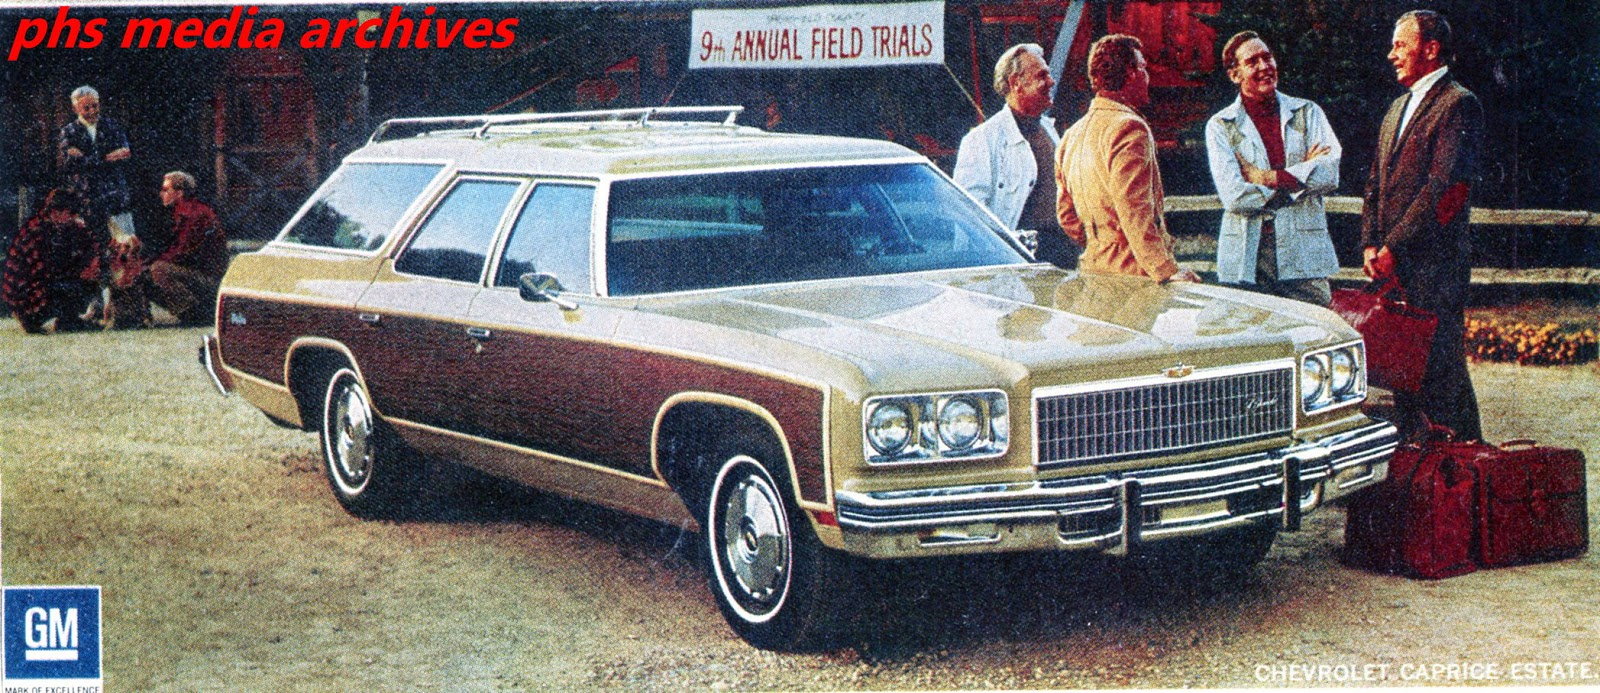 6e5ceae9a9 Full size behemoth wagons from 1976 and earlier were the last of the pre  OPEC American cars. Released in 1971